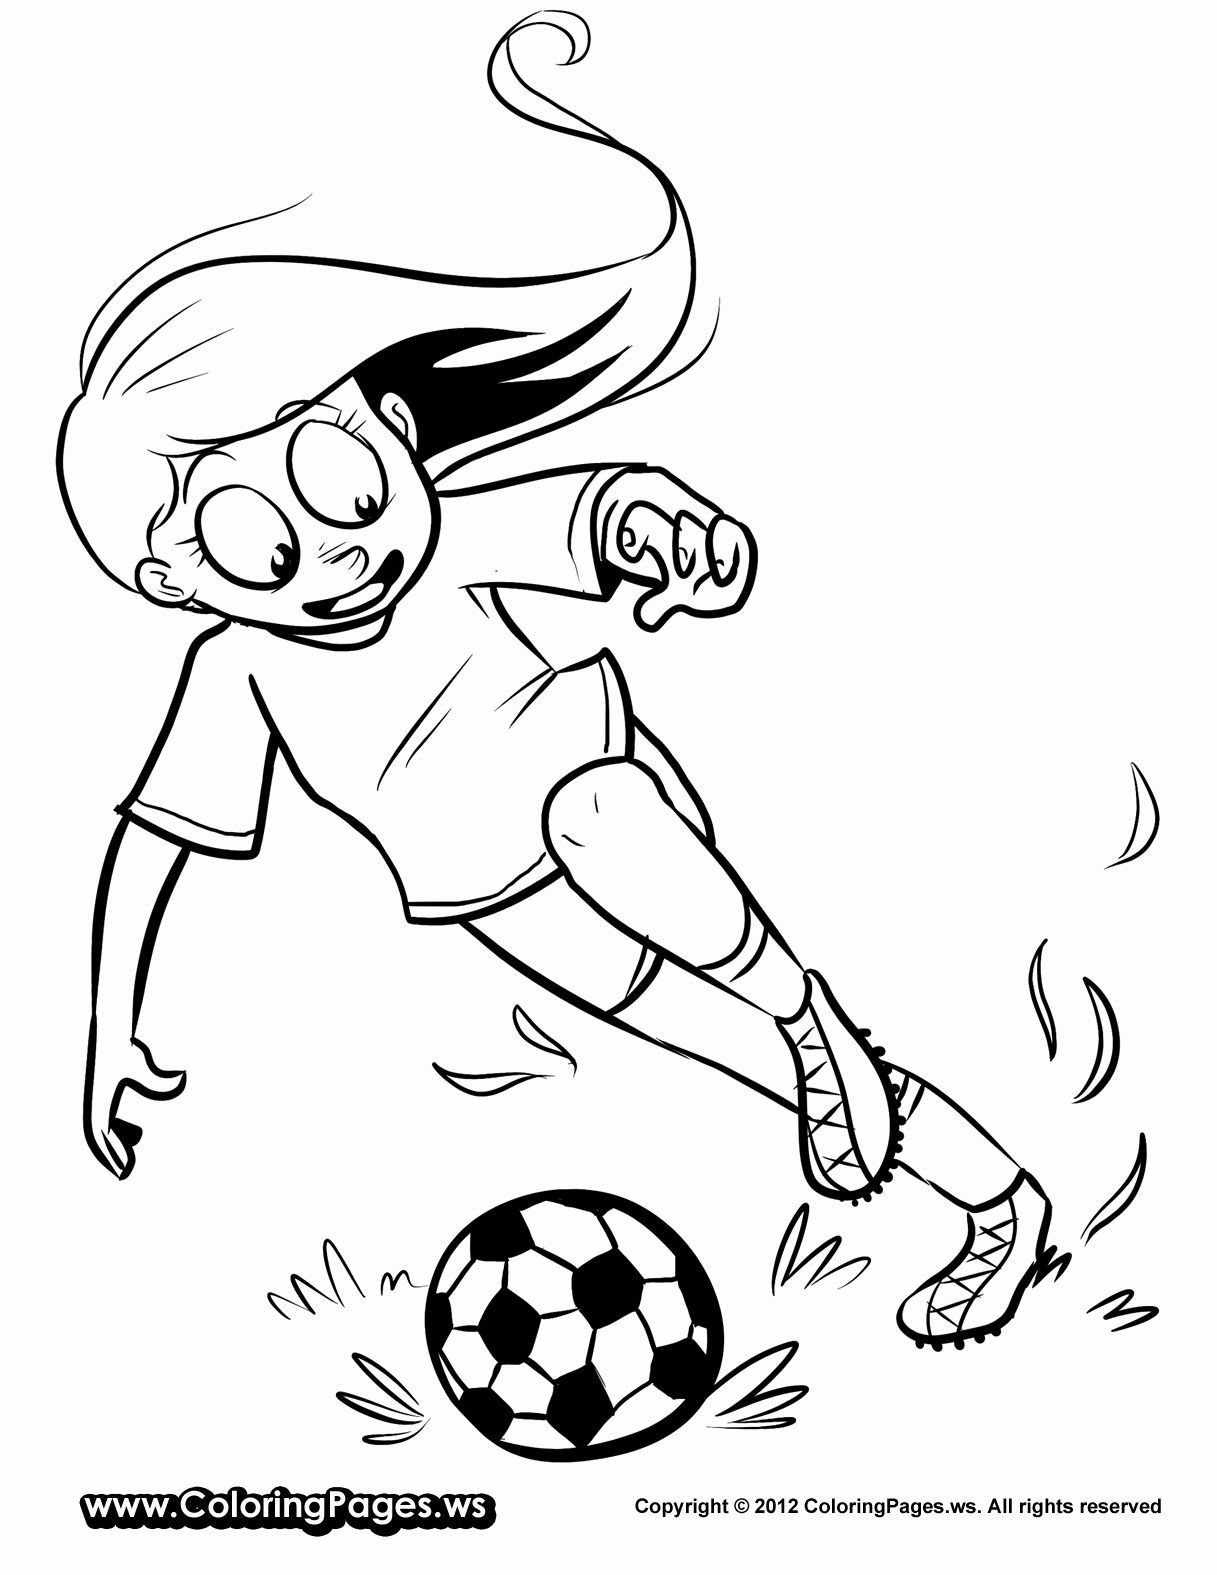 Milky Way Coloring Page Awesome Soccer Coloring Pages Getcoloringpages